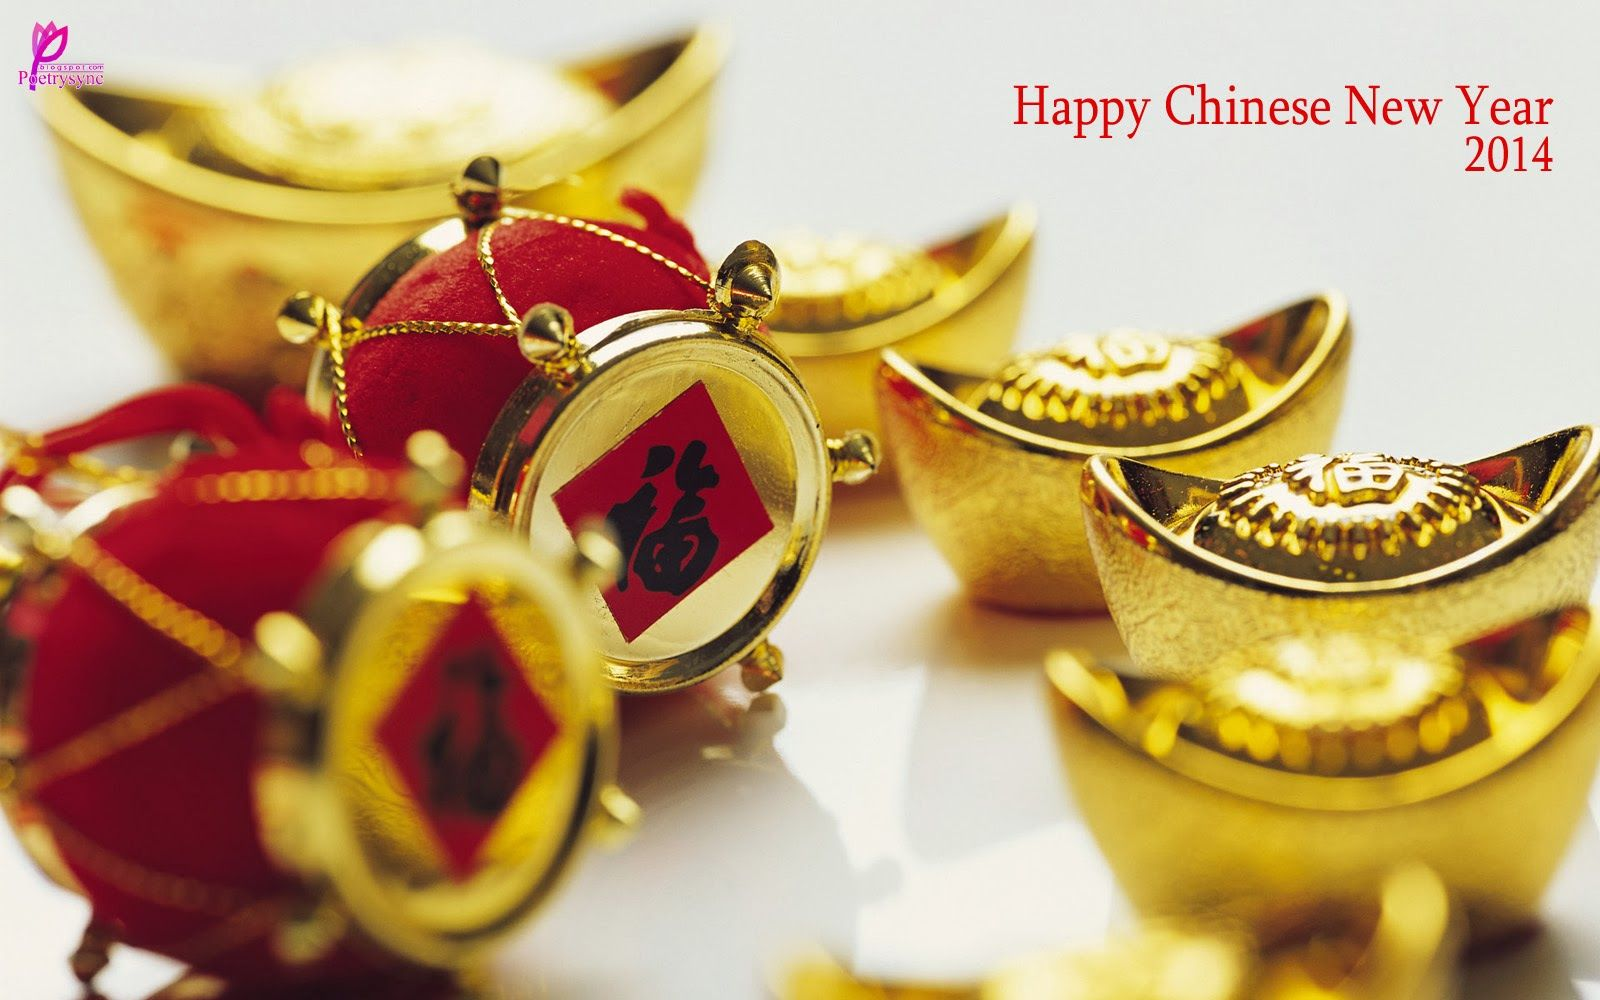 Happy Chinese New Year Happy Lunar New Year 2014 Tet New